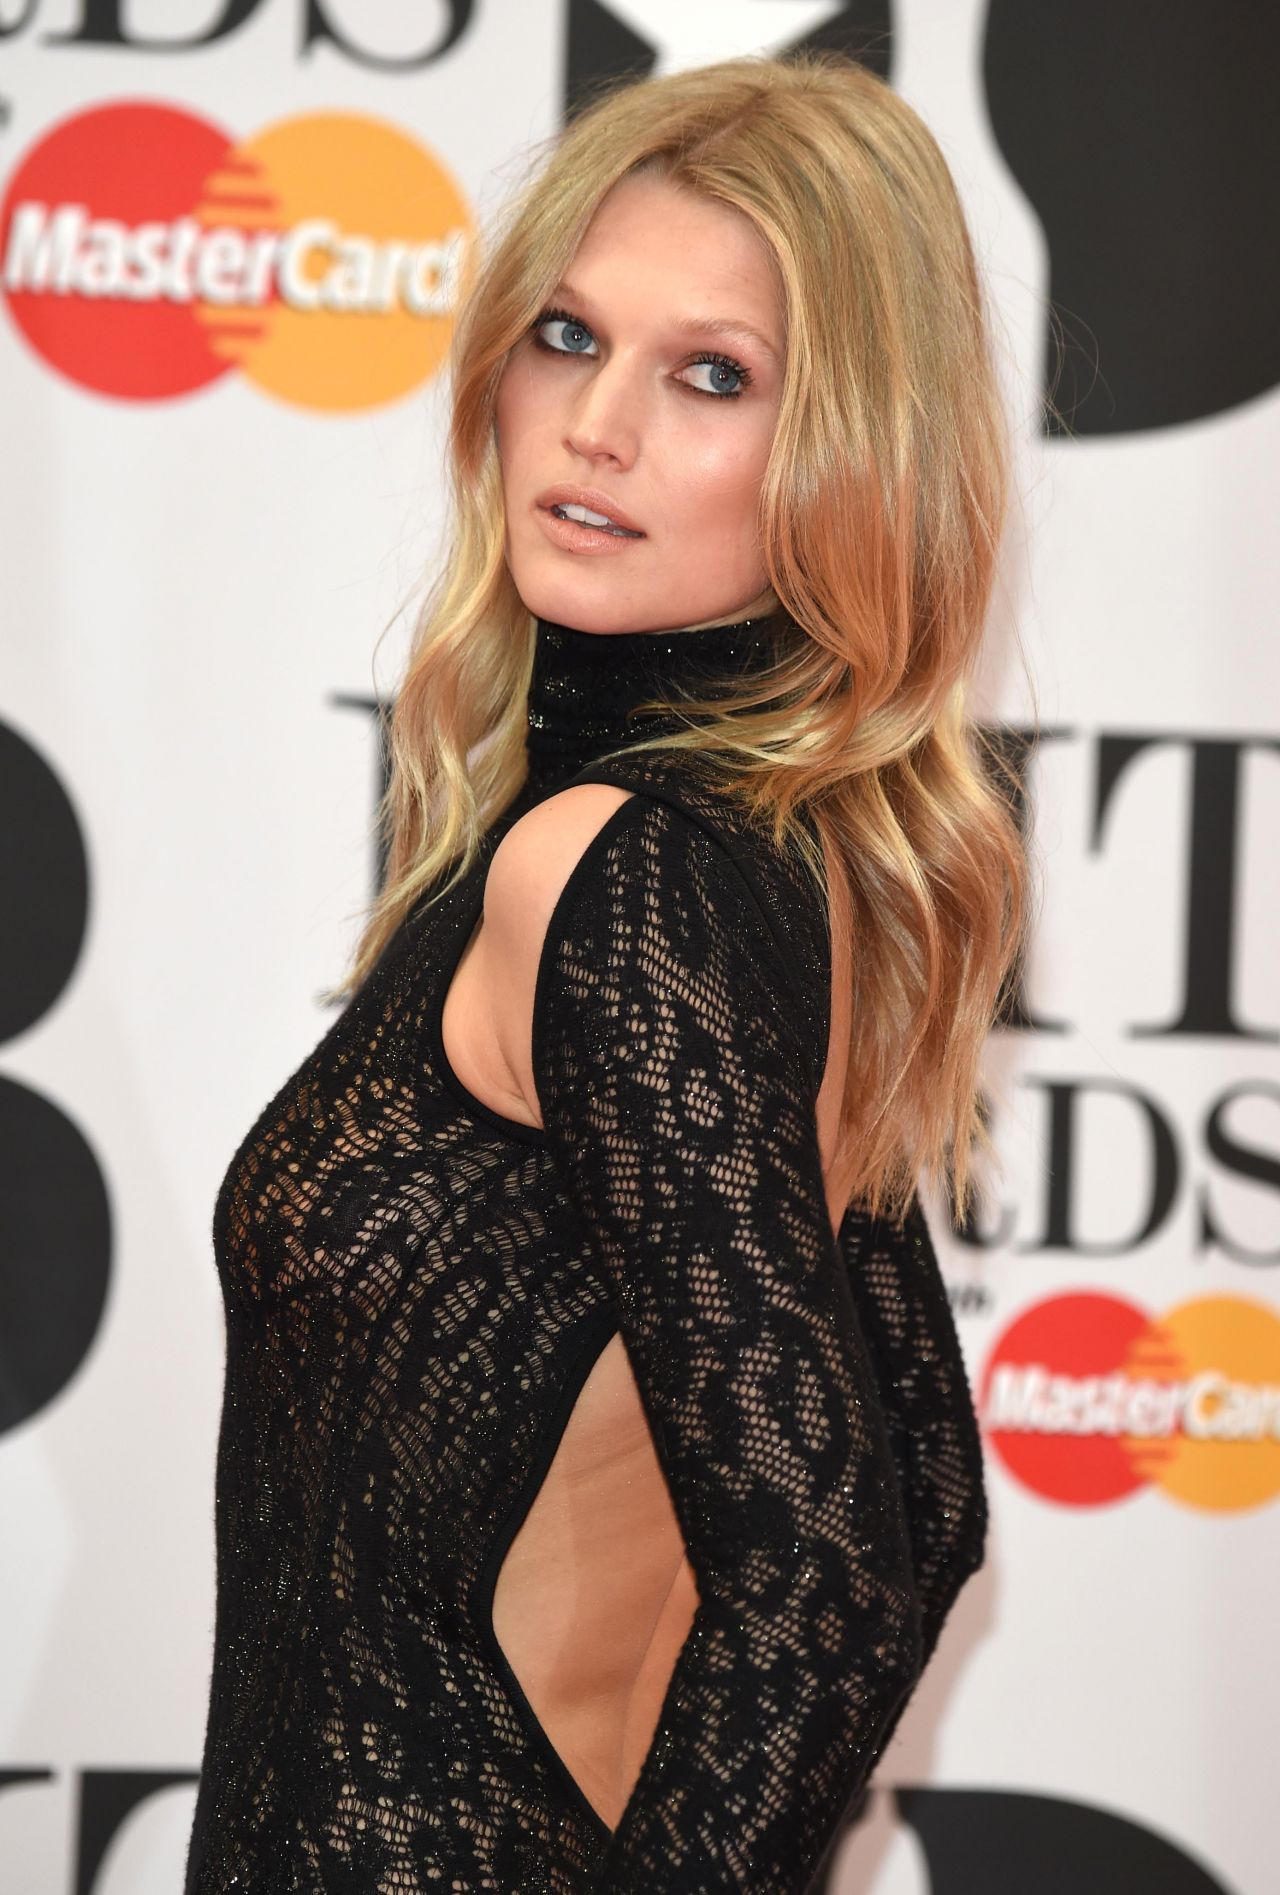 Toni Garrn photo 1103 of 1201 pics wallpaper   photo 1280x1895